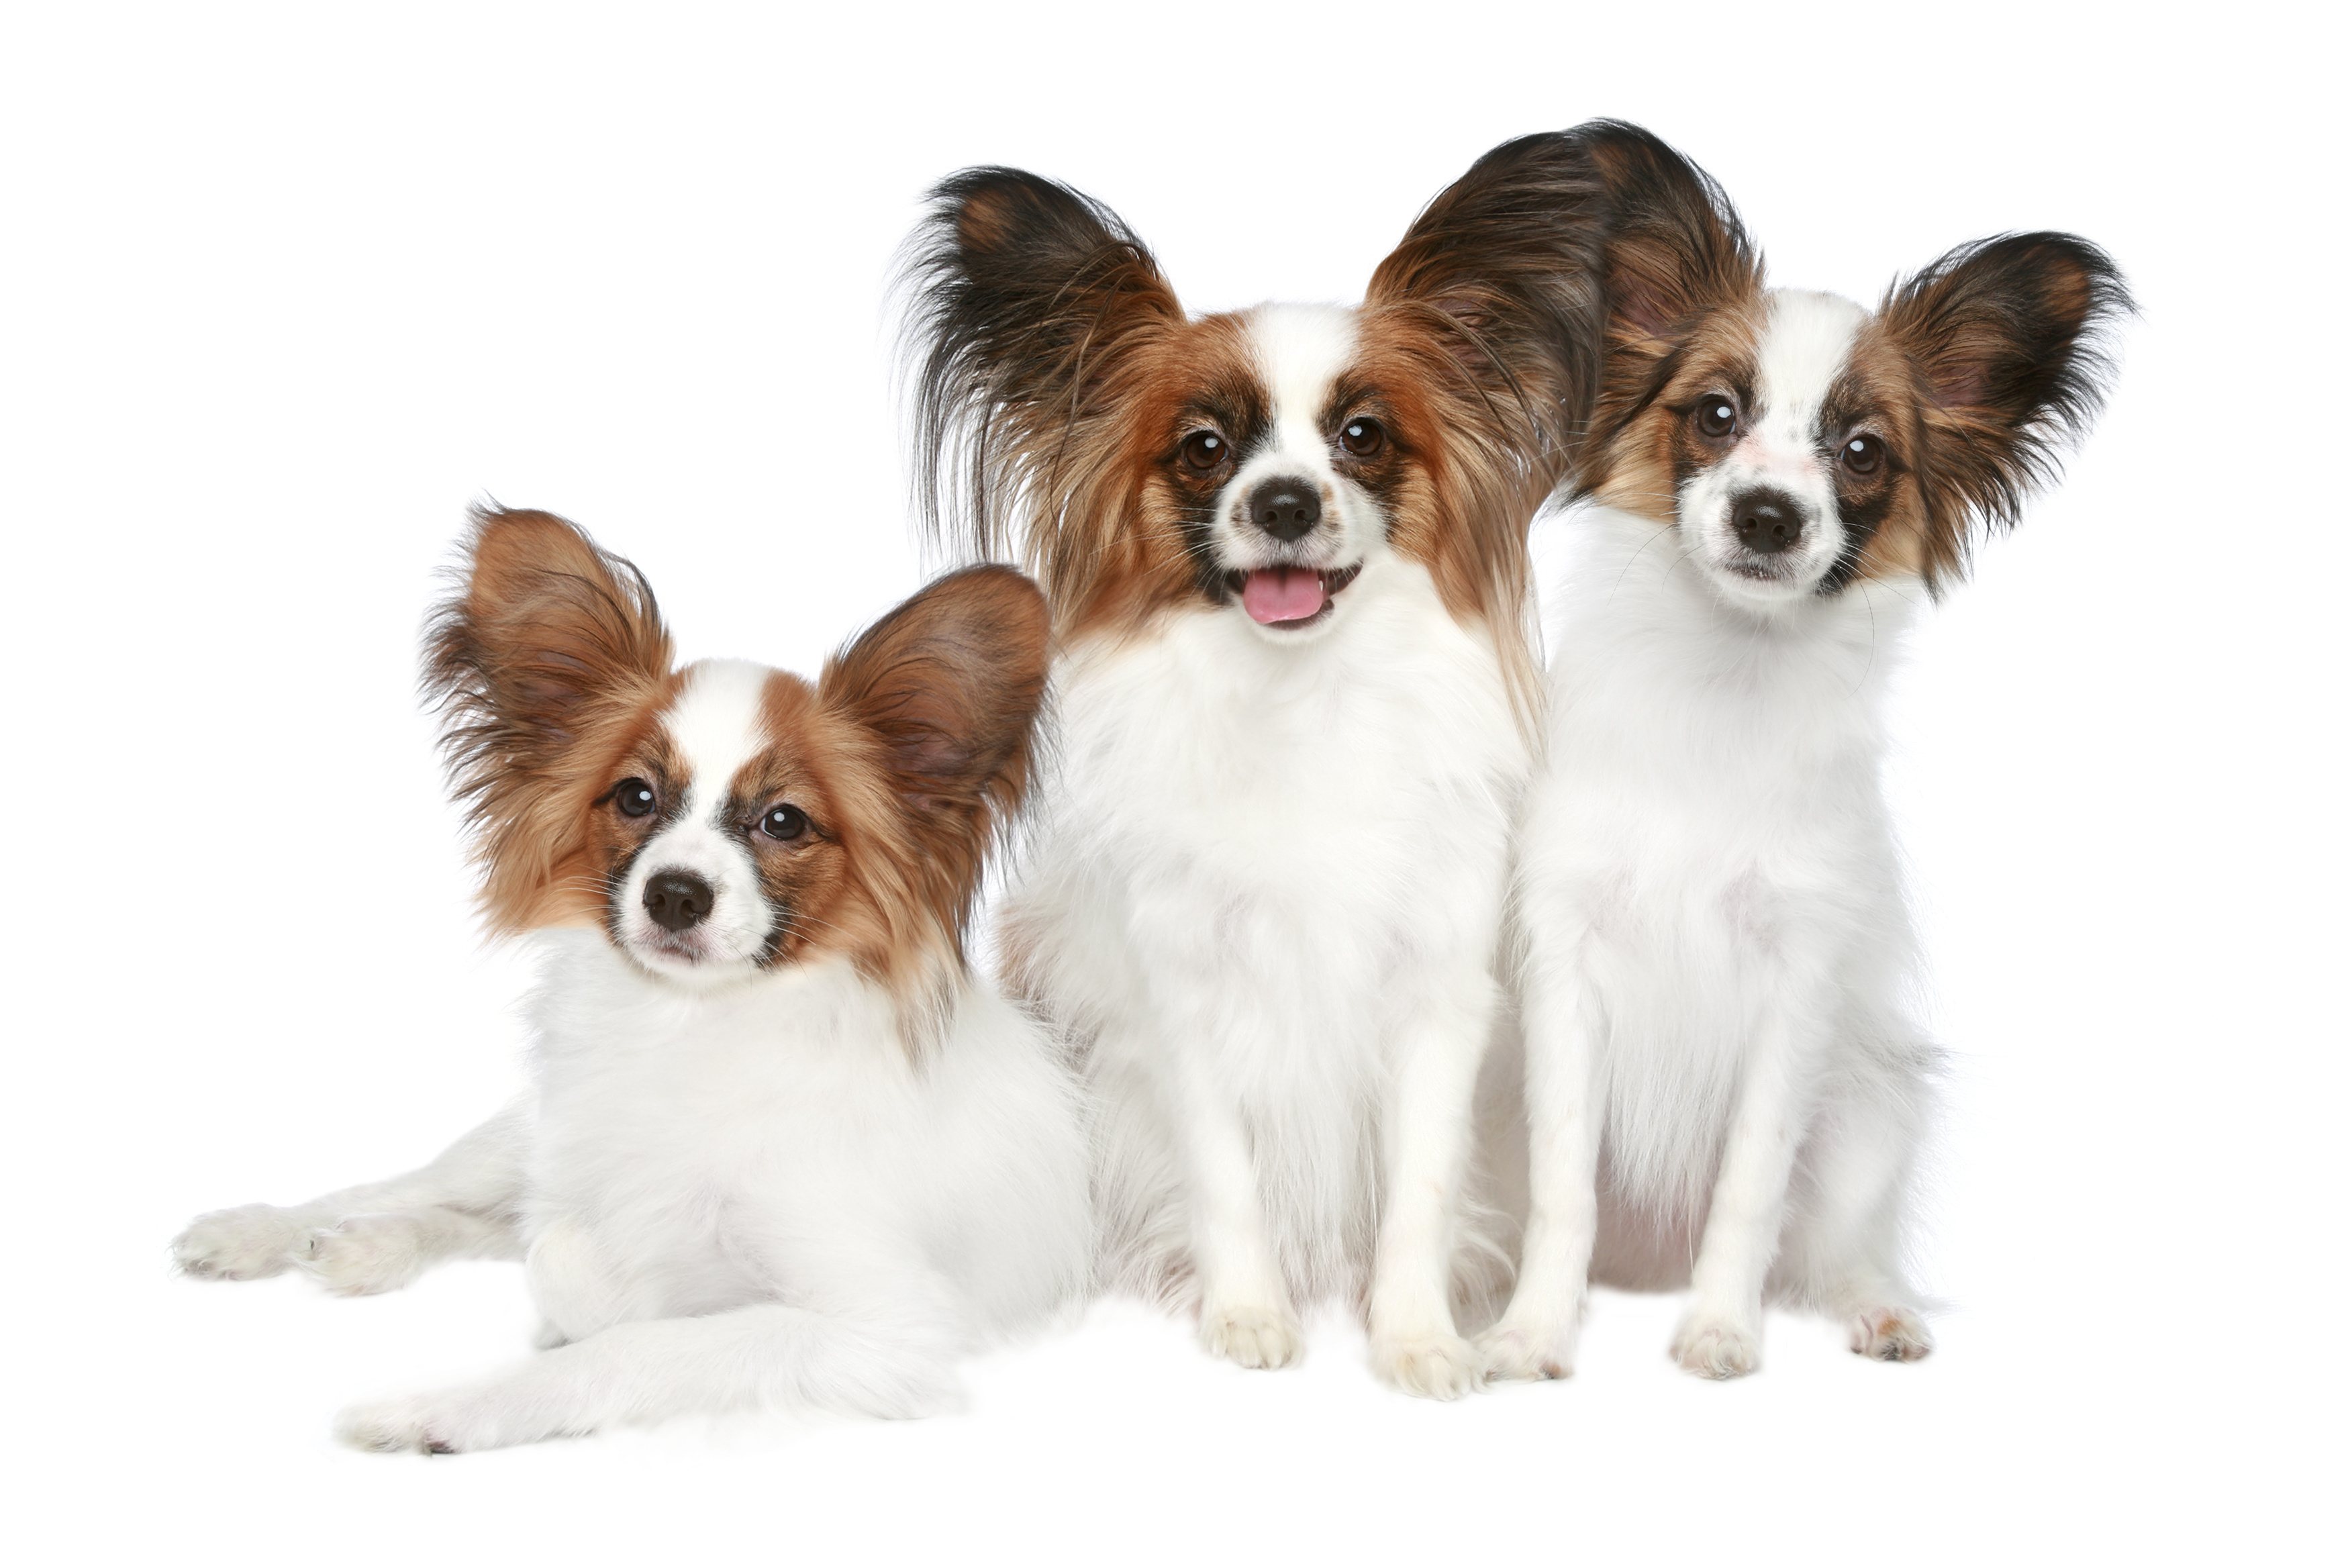 Three Papillon dog puppies in front of white background